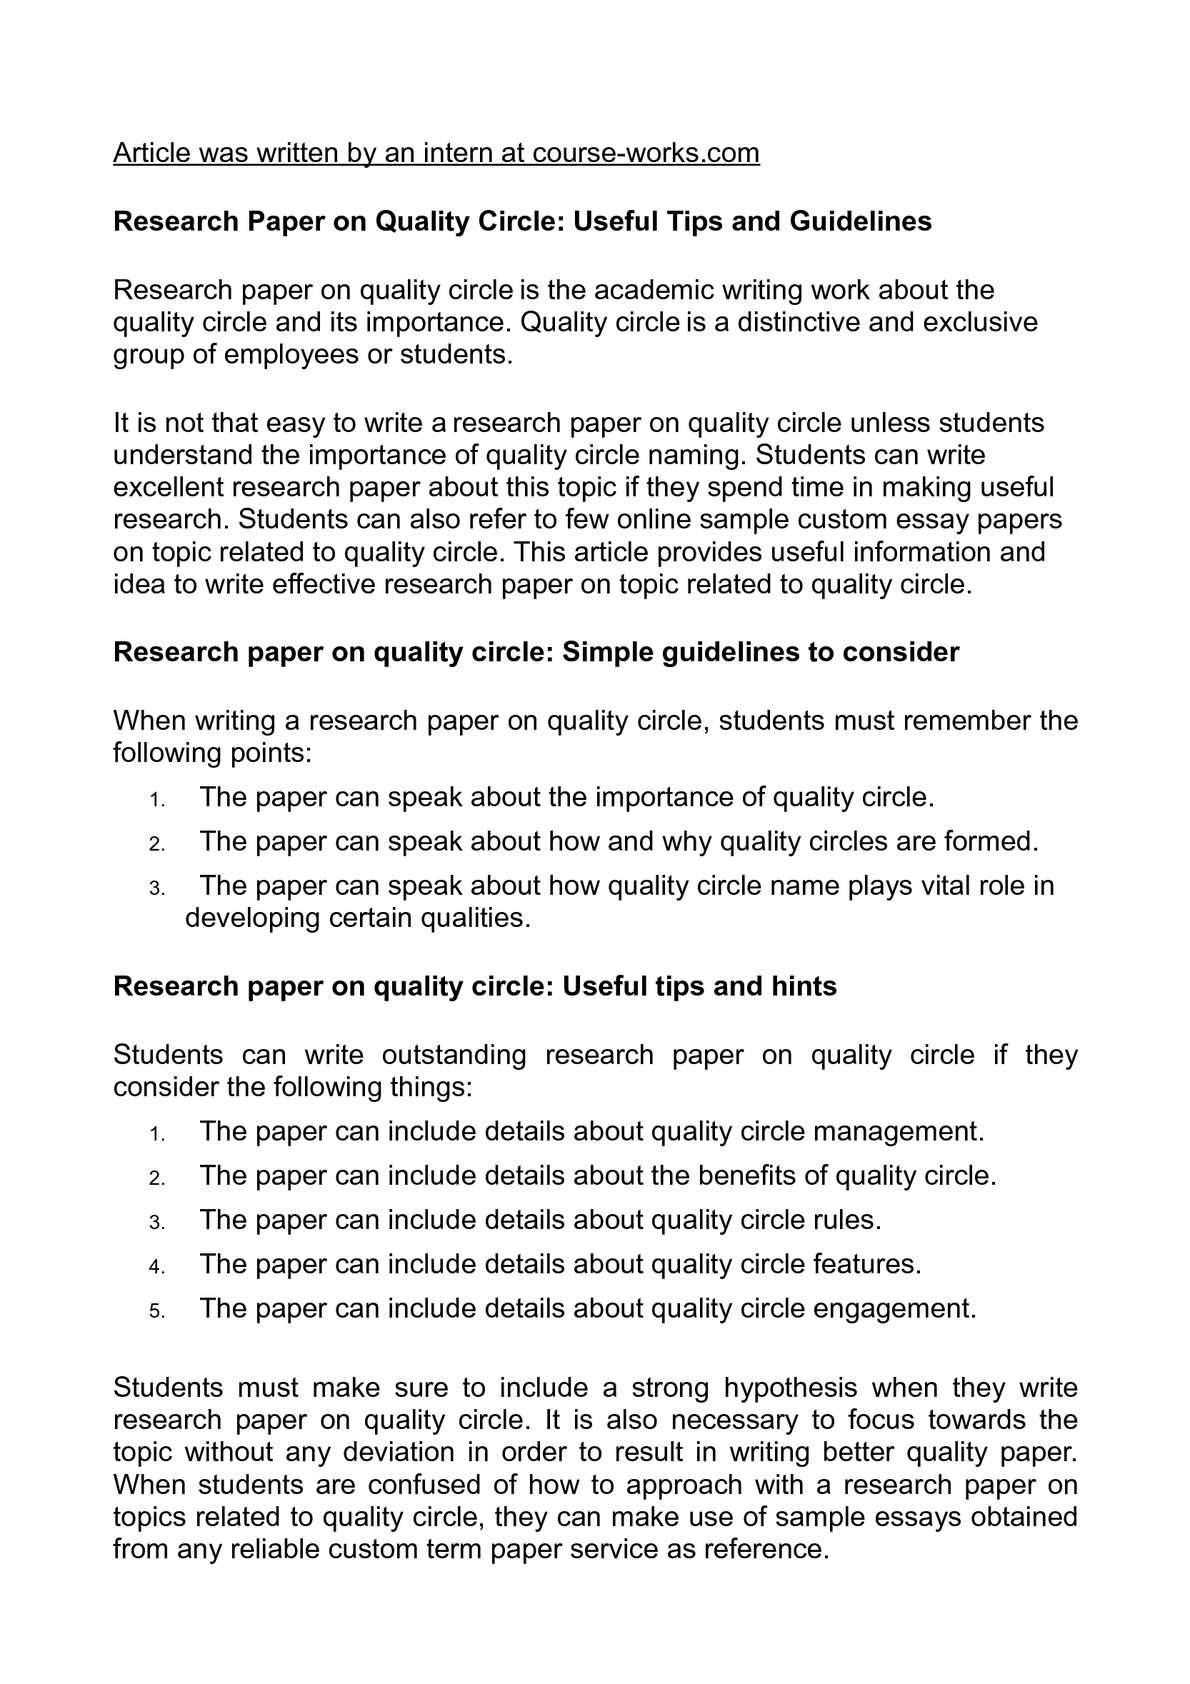 Calamo  Research Paper On Quality Circle Useful Tips And Guidelines Research Paper On Quality Circle Useful Tips And Guidelines Buy Book Reports Online also I Need Someone To Do My Social Research Assigment  Old English Essay